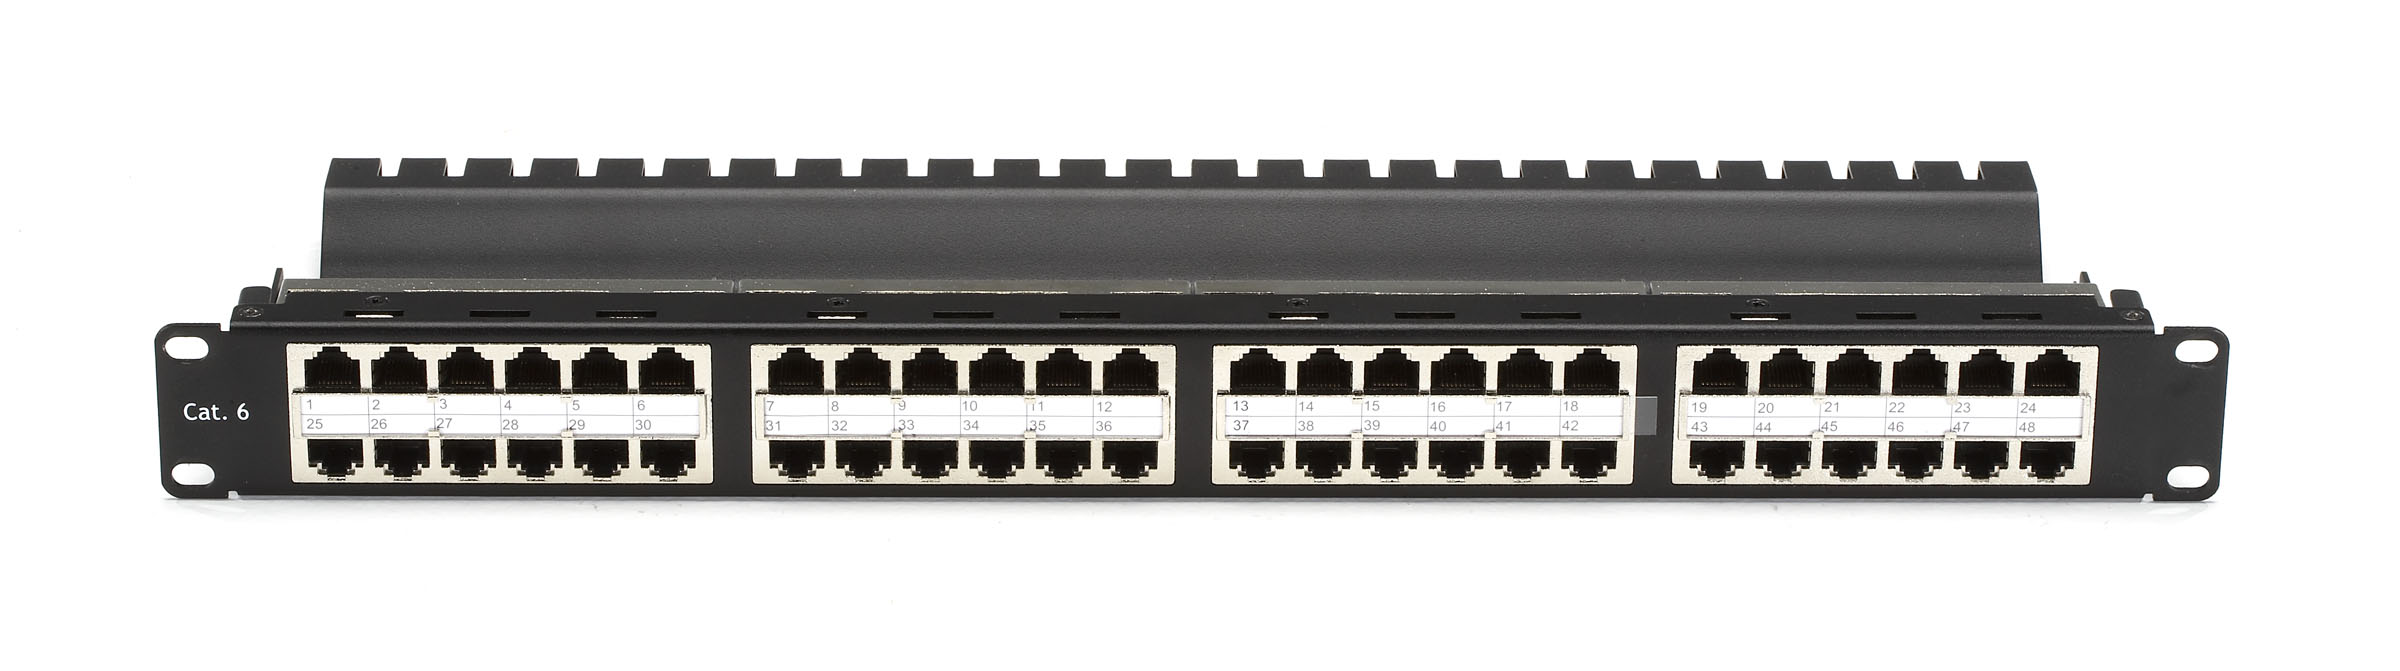 Cat6 patch panel, feed-through, 2u, shielded, 48-port | black box.